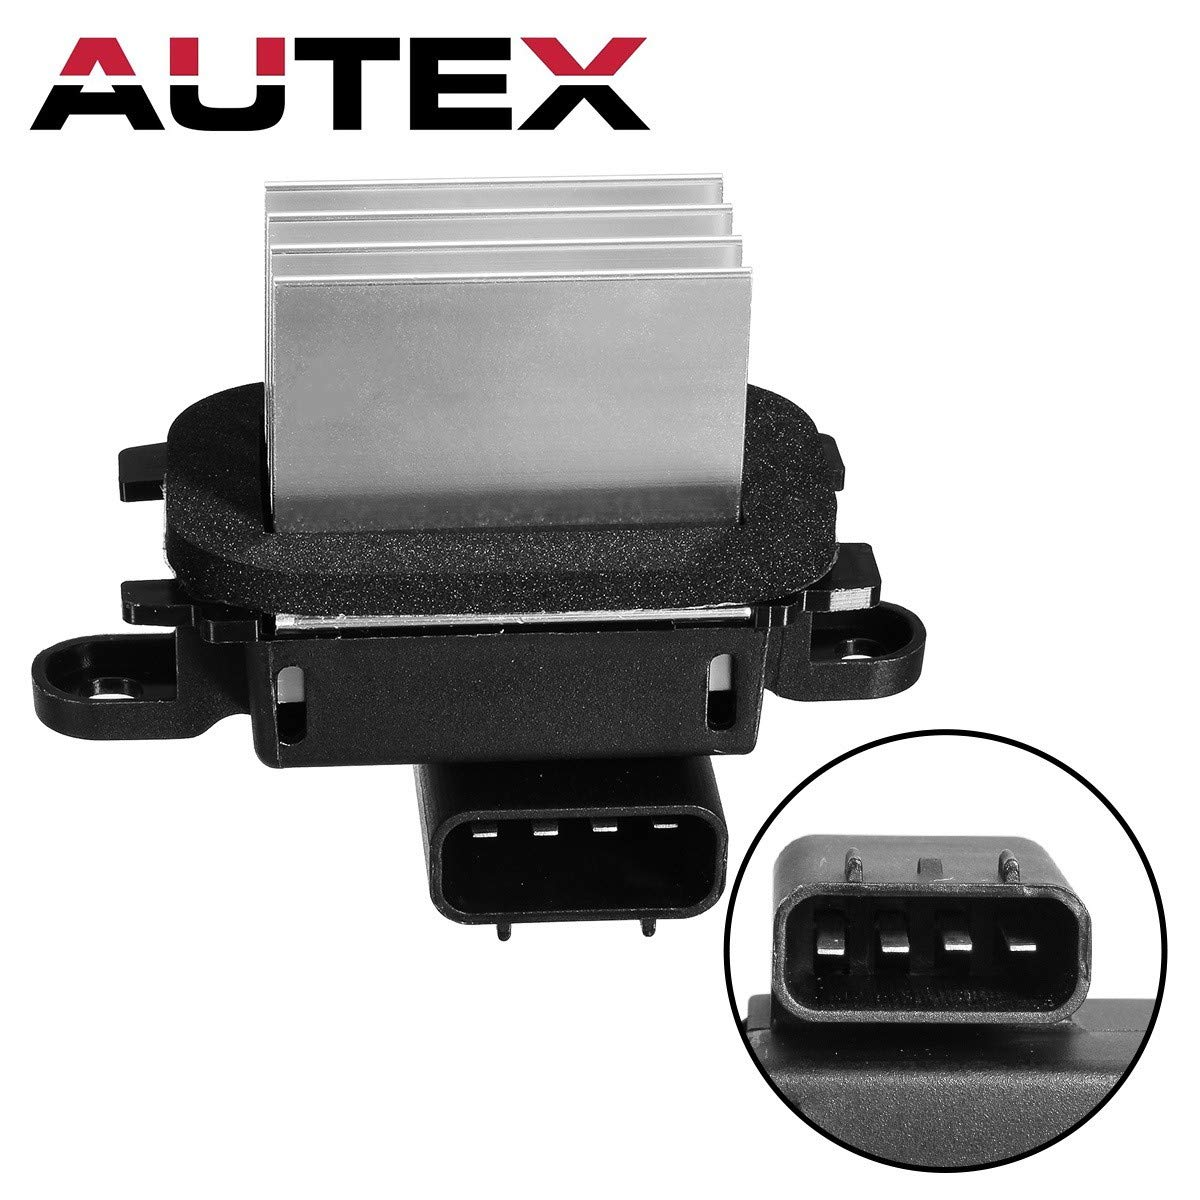 AUTEX ATC HVAC Blower Motor Resistor Compatible with Ford Expedition,Lincoln Navigator 2009-2017 Replacement for Ford F-150 09-14,Lincoln Mark Lt 10-14 Resistor RU893 JA1925